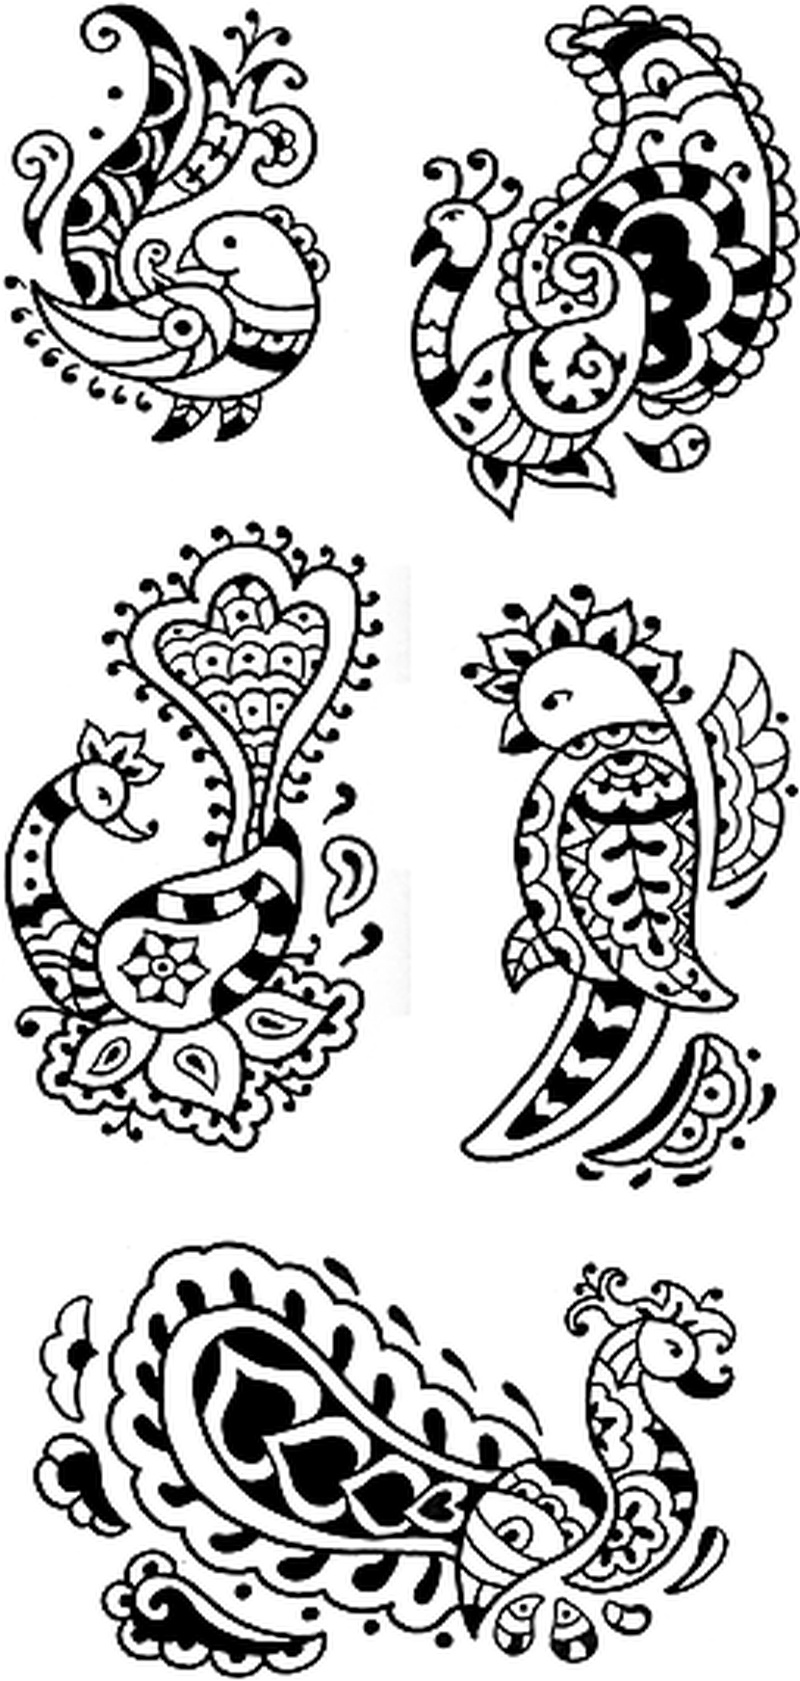 Henna Birds Raven Dove Swallow Eagle Tattoo Designs - Tattoos Book - Free Printable Henna Tattoo Designs